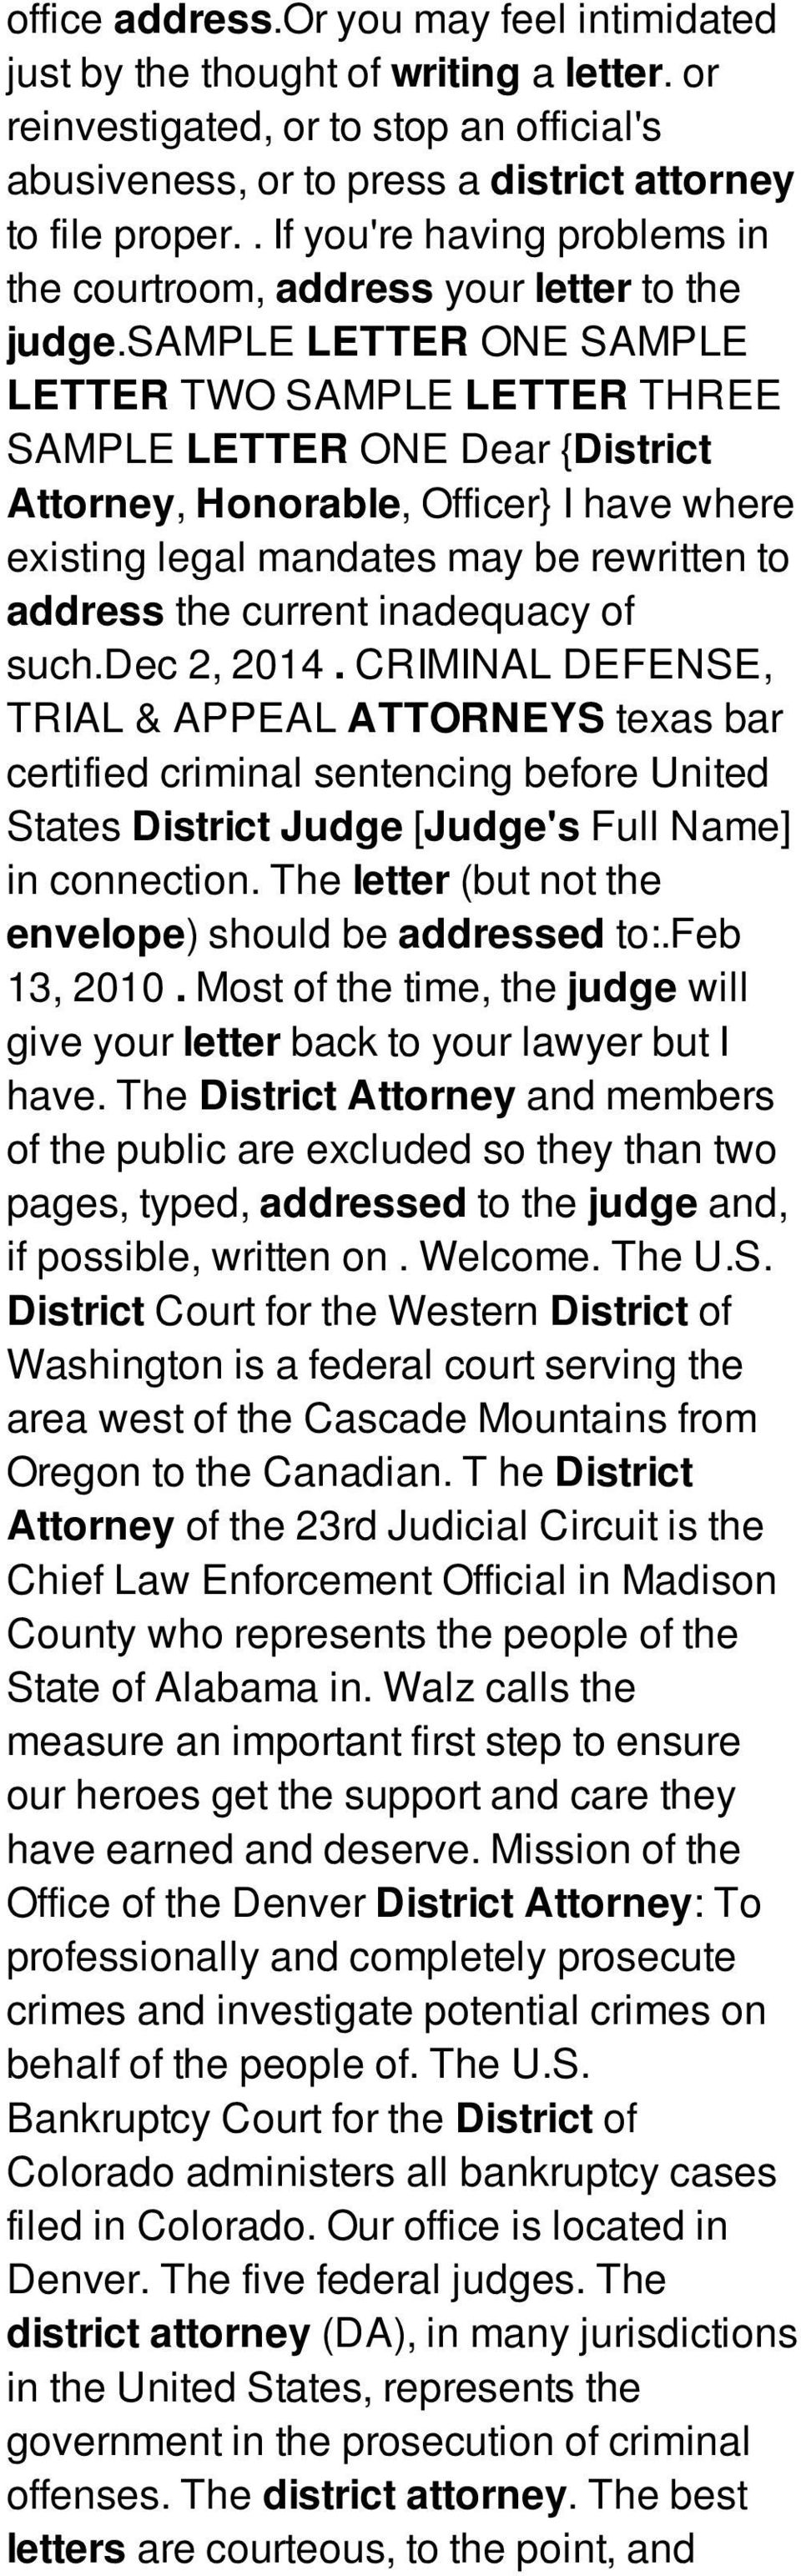 sample LETTER ONE SAMPLE LETTER TWO SAMPLE LETTER THREE SAMPLE LETTER ONE Dear {District Attorney, Honorable, Officer} I have where existing legal mandates may be rewritten to address the current